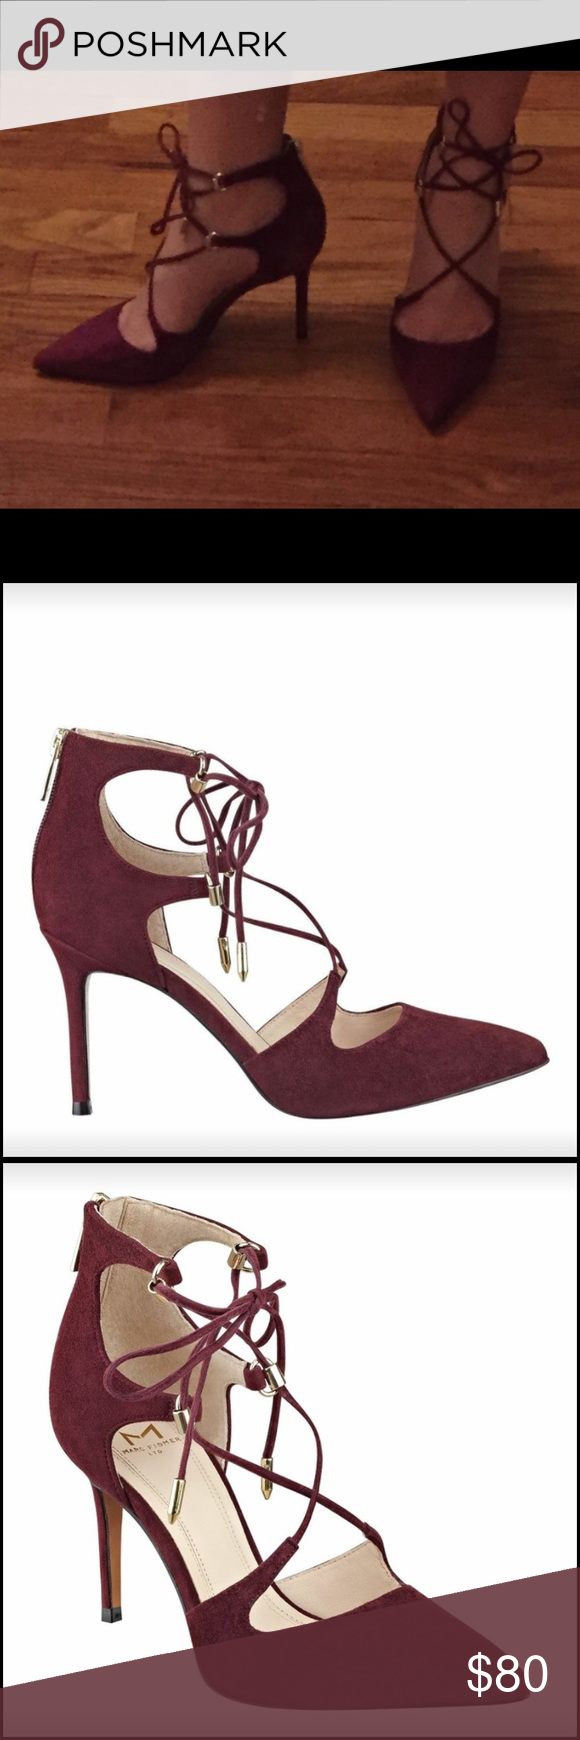 """Toni Lace Up Pointy Toe Pump (Burgundy Suede) Toni Lace Up Pointy Toe Pump by Marc Fisher in Burgundy Suede, SIZE 7M have never been worn. I bought them as potential wedding shoes but the color is not right - they are really pretty shoes though. ORIGINAL packaging NEVER been worn. Origin: Imported Heel Height: 3.5"""" Upper: Leather Lining: Leather Outsole: Manmade Read Less Marc Fisher Shoes Heels"""